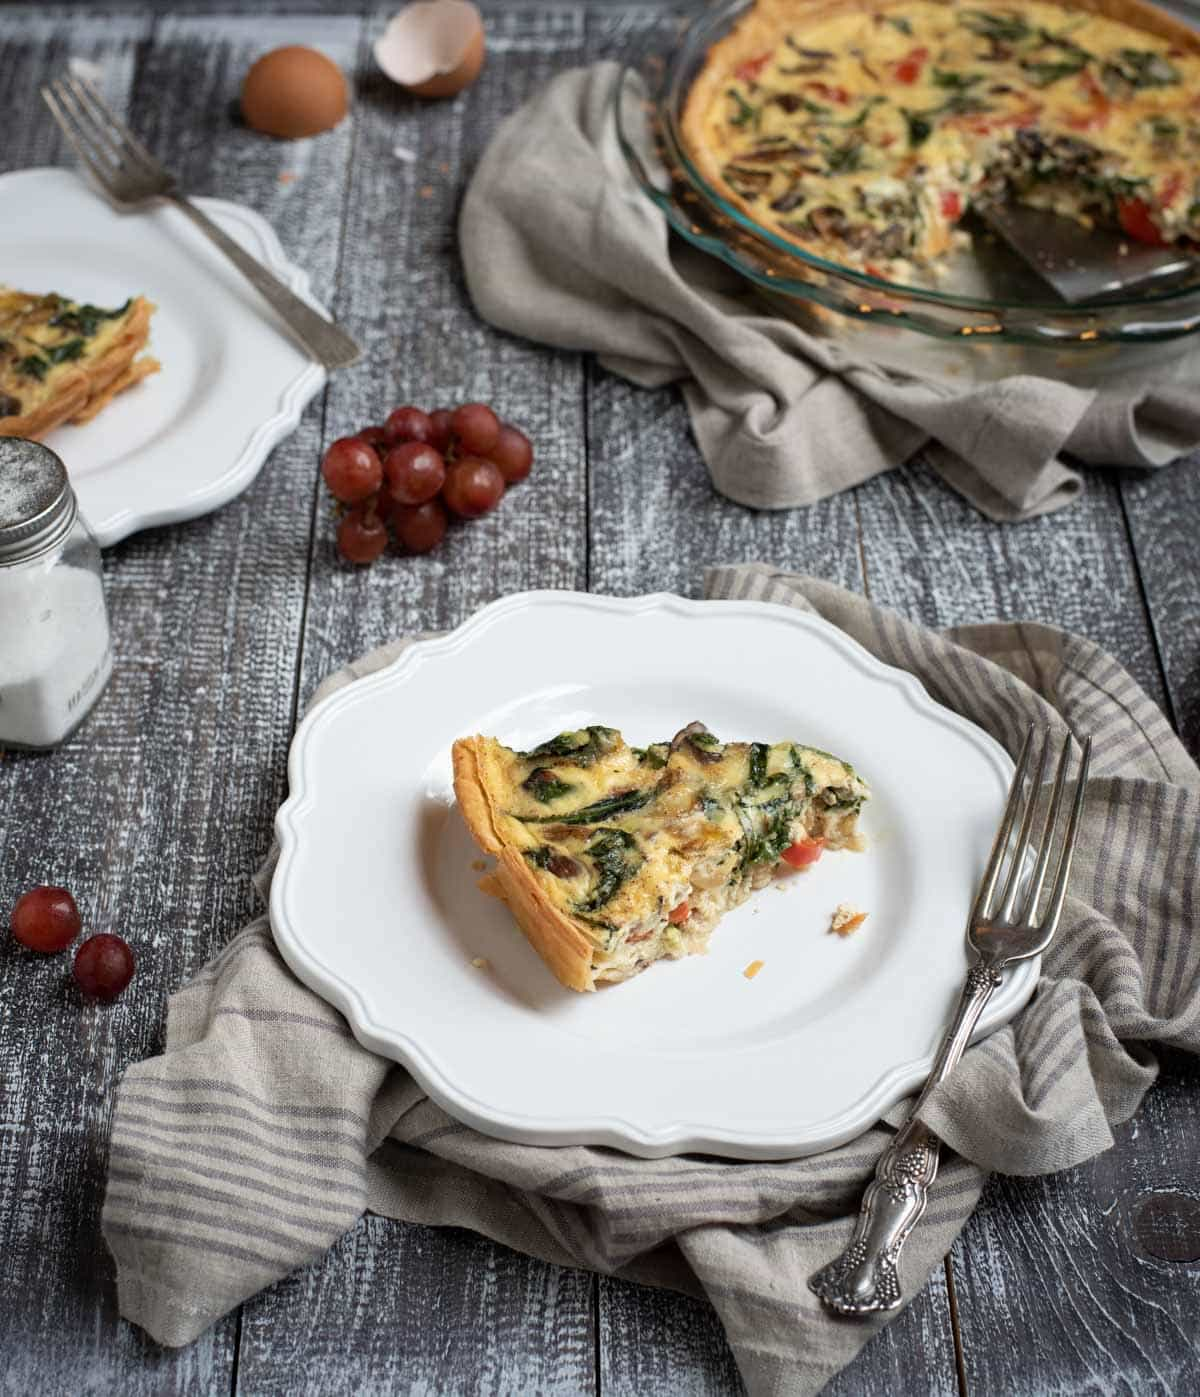 Plate with vegetable quiche slice